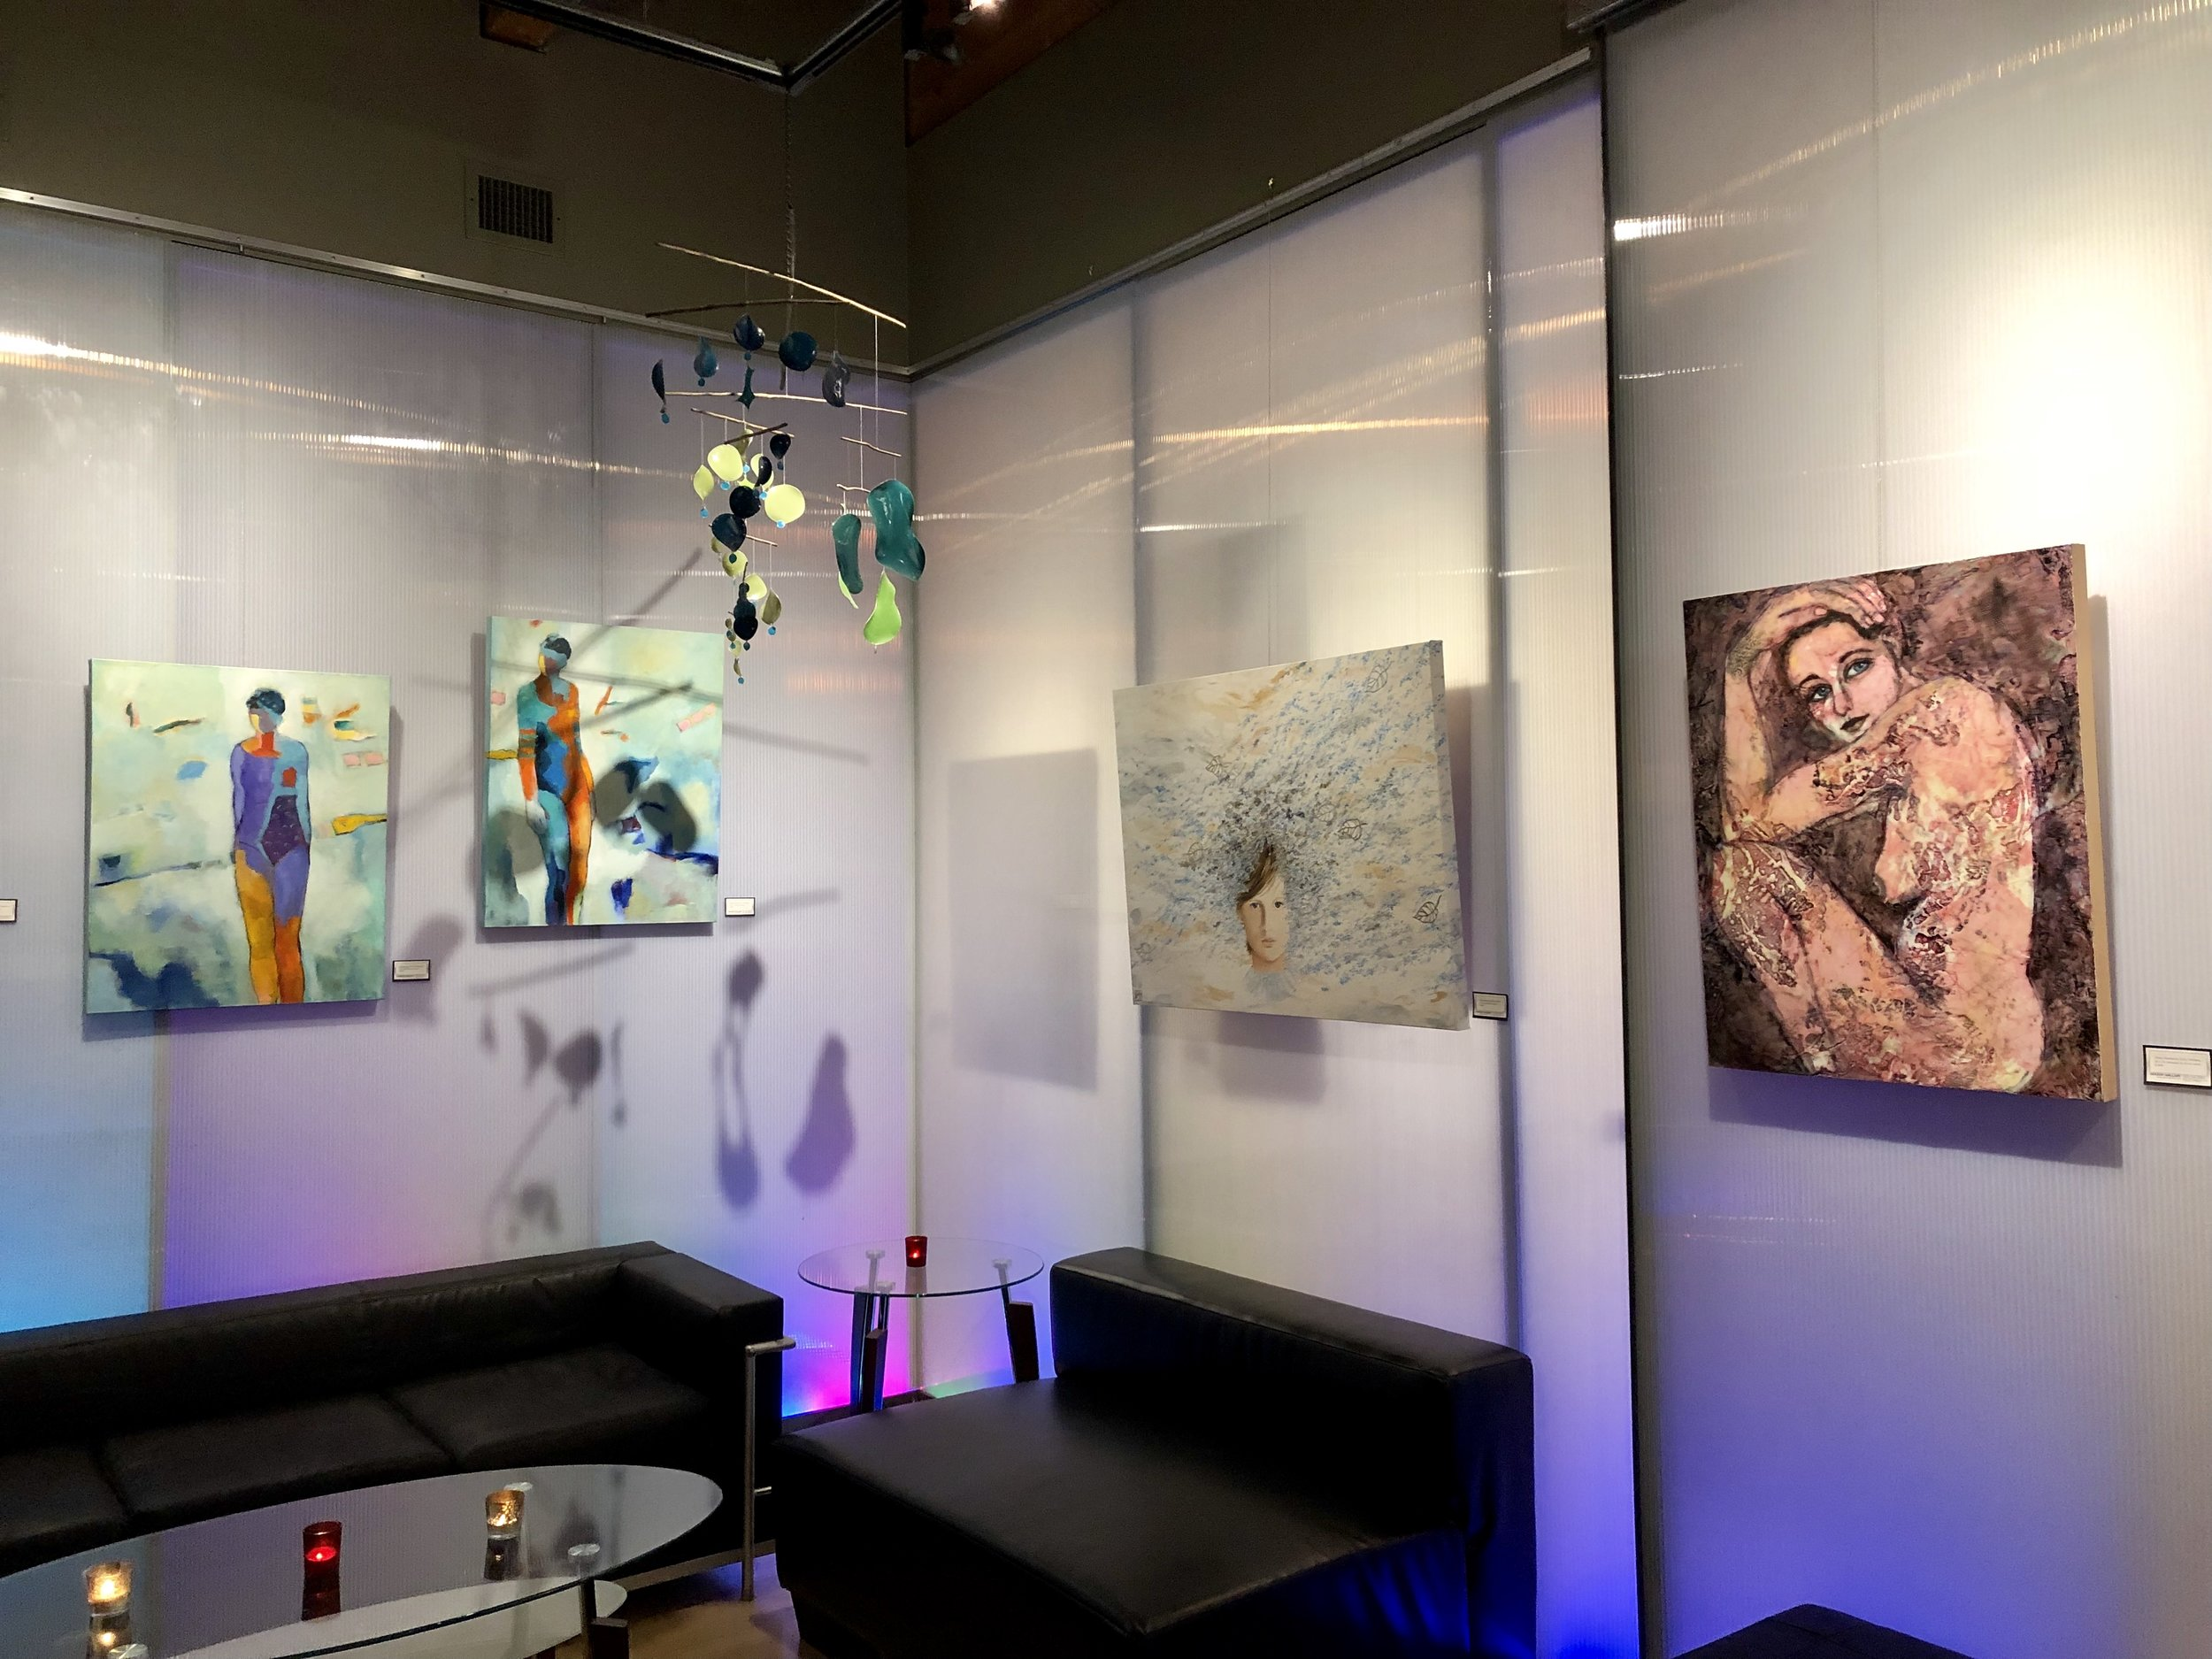 Works by L McDonald, Edyta Salak and Kelly Williams